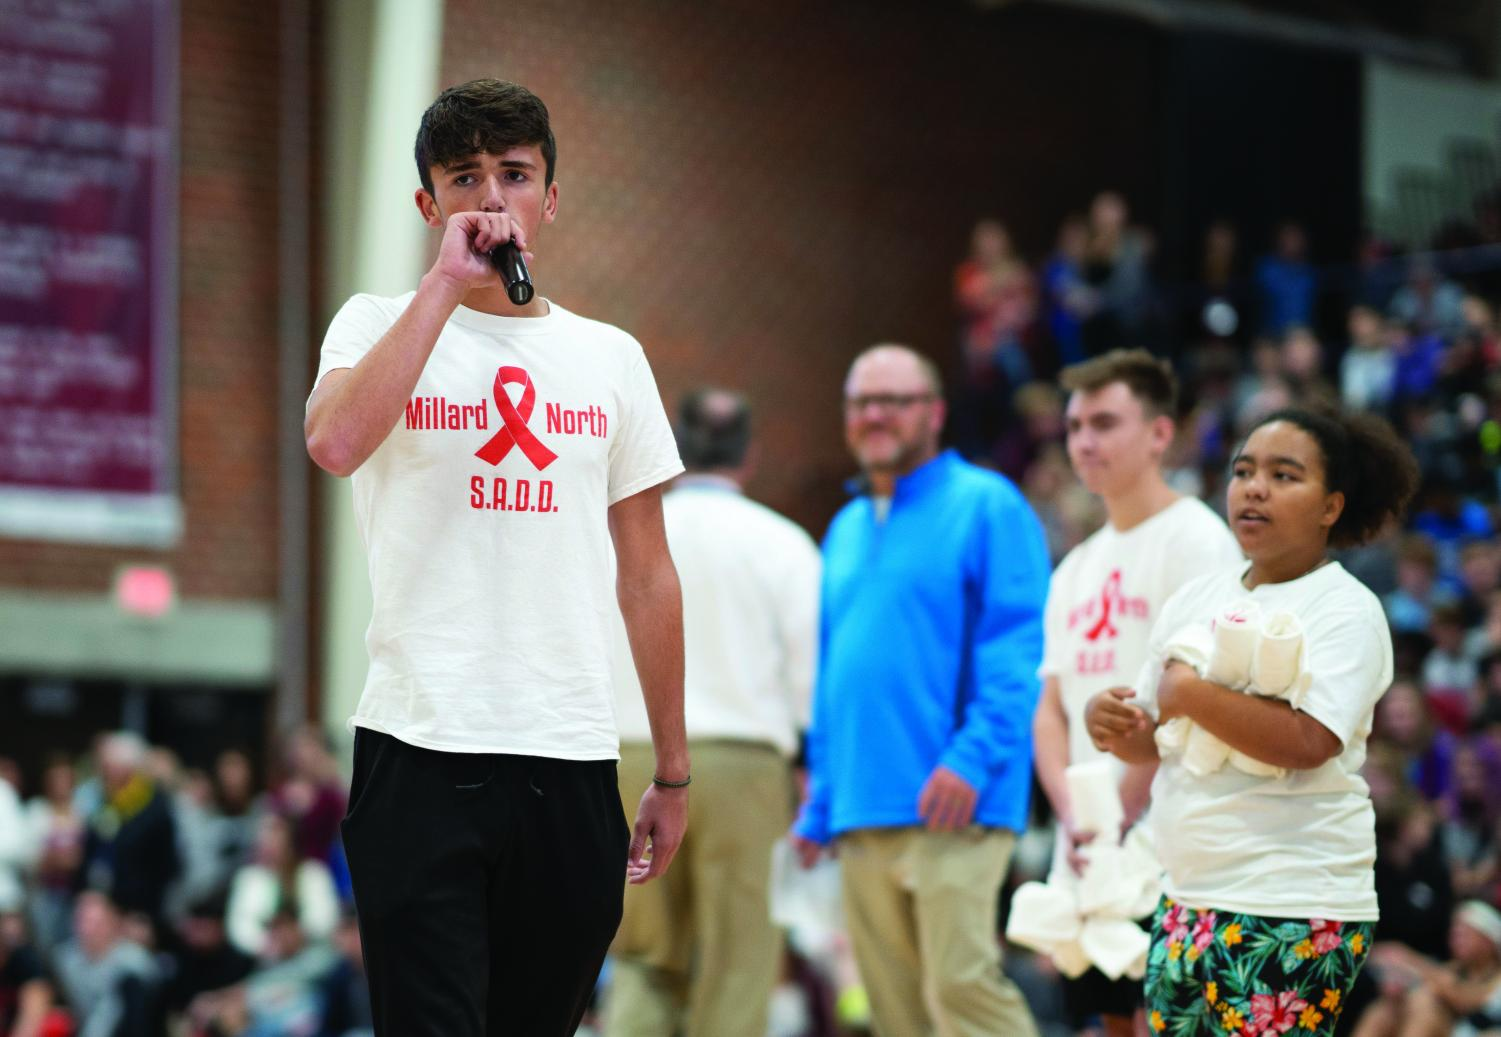 Senior Luke Uhlig raises awareness for drunk driving during pep rally. Senior Mia Obure hands out T-shirts to the crowd.